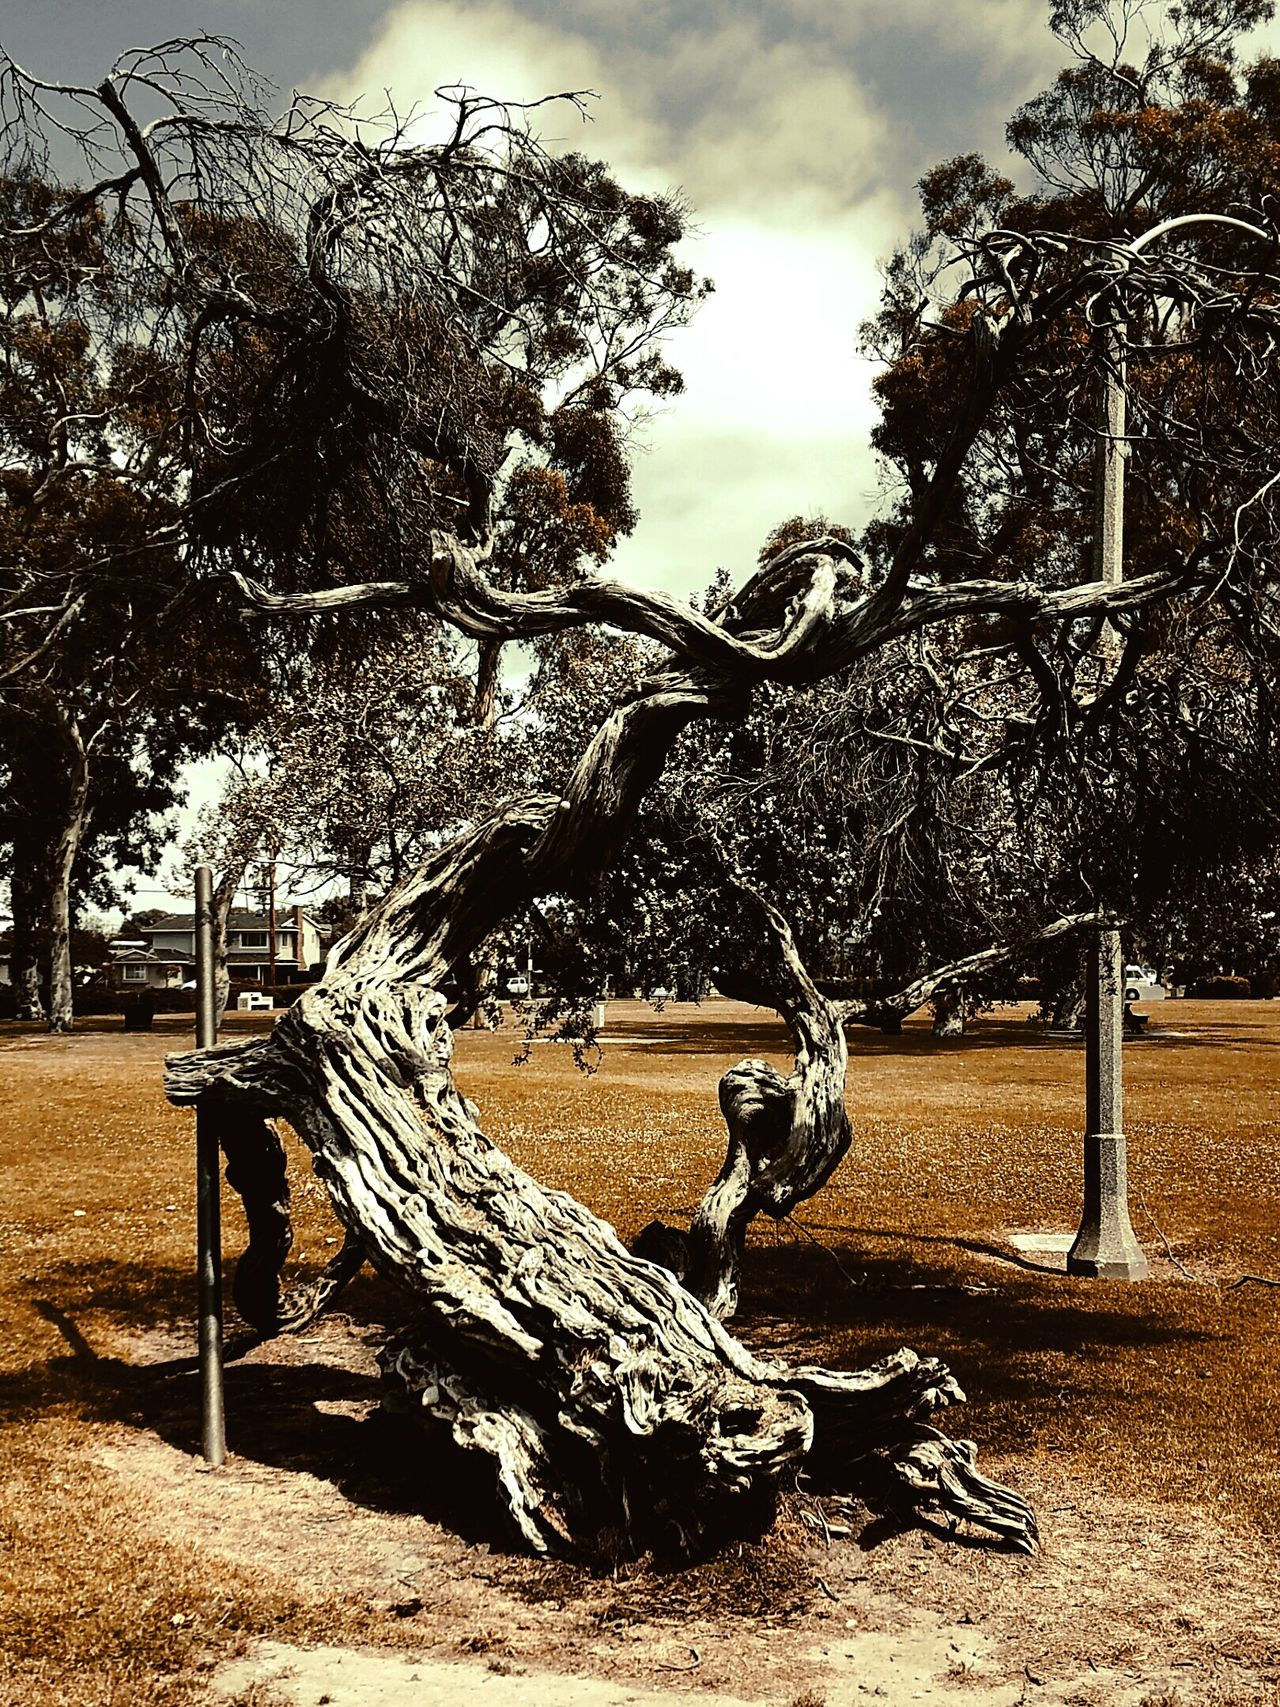 Retrofilm Tree Dead Tree Outdoors Day No People Street Filterphotography Walking Around Creativephotography Godislove Downtown Tree Huntingtonbeach Parks And Recreation Beauty In Nature SpringBreak Application Effect Park Lunchtime! Excersing Growth